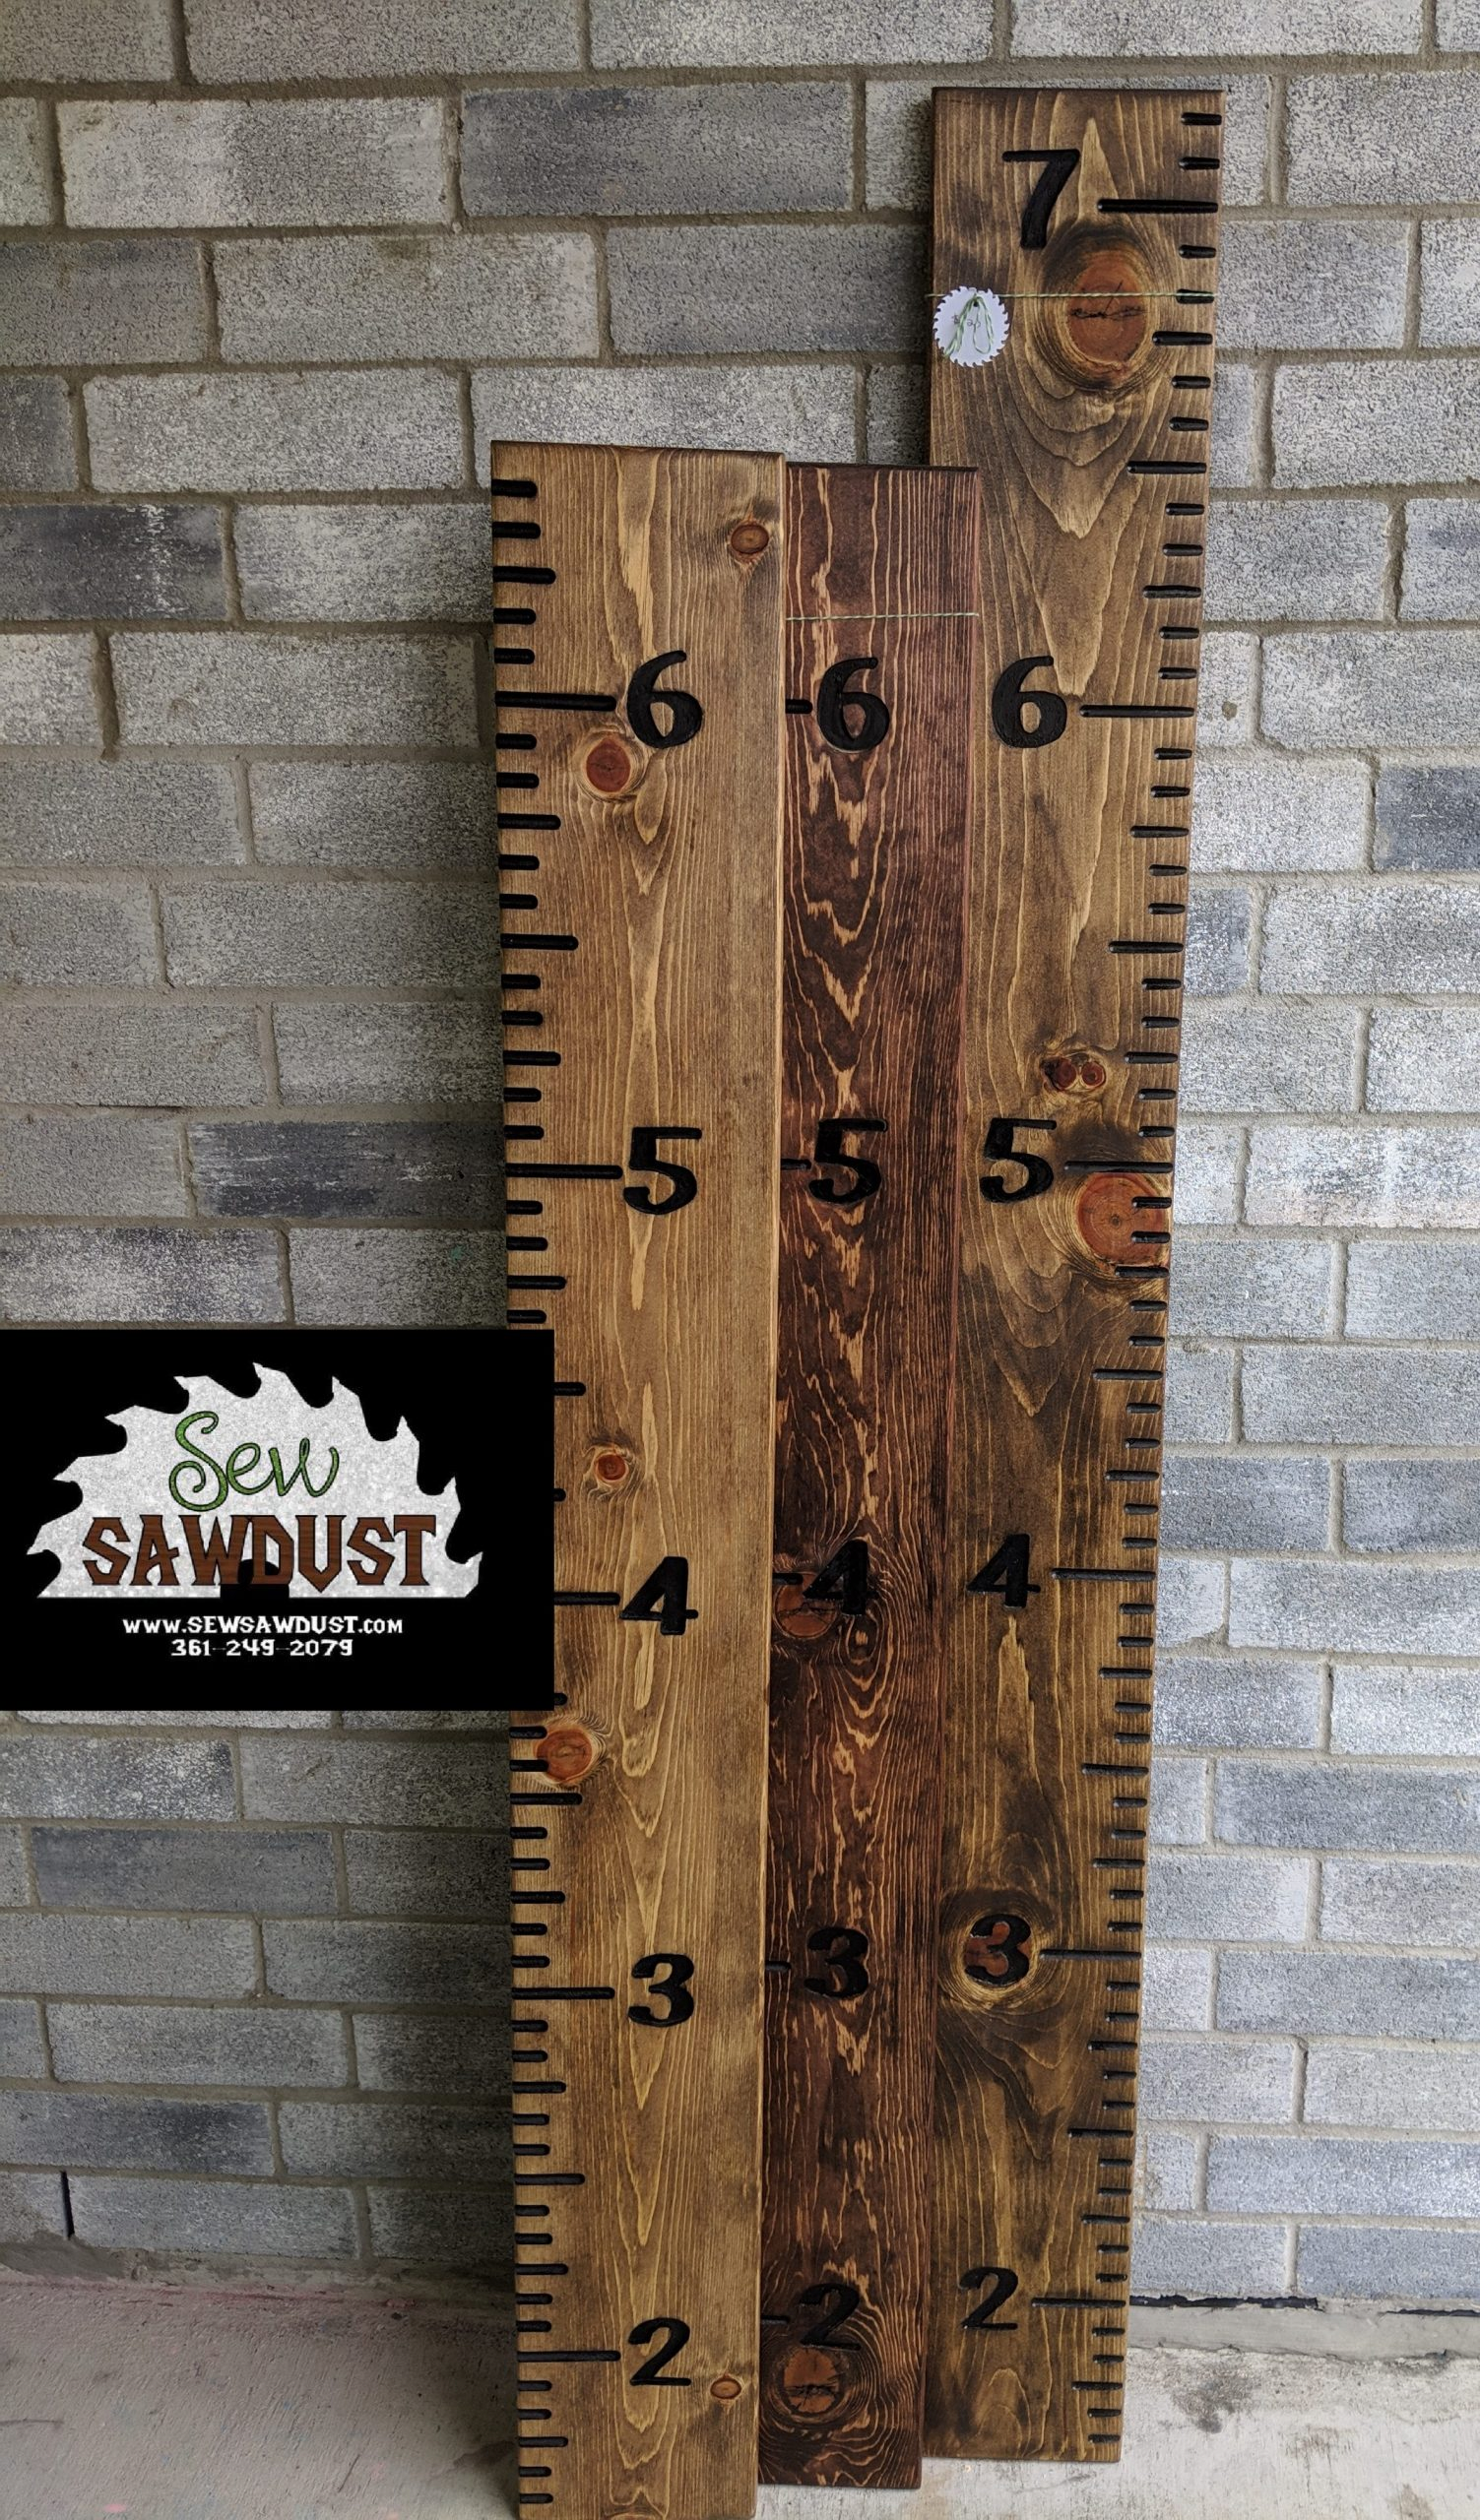 Custom made wooden growth chart, made by sew sawdust